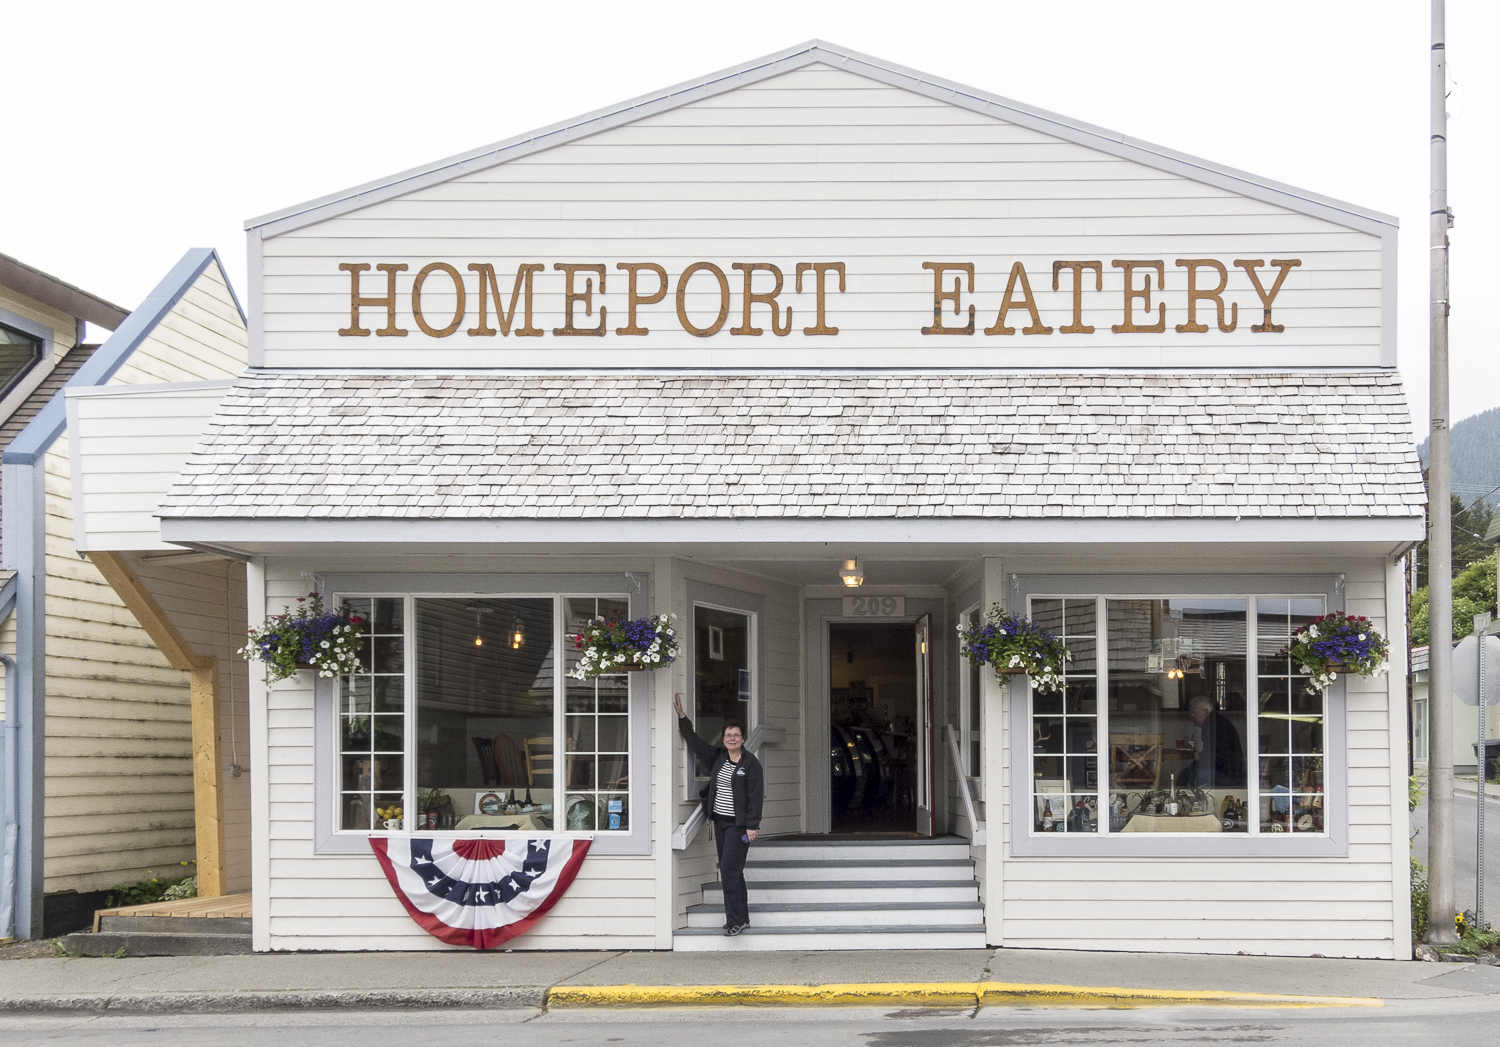 Karen strikes a pose in front of the Homeport Eatery.